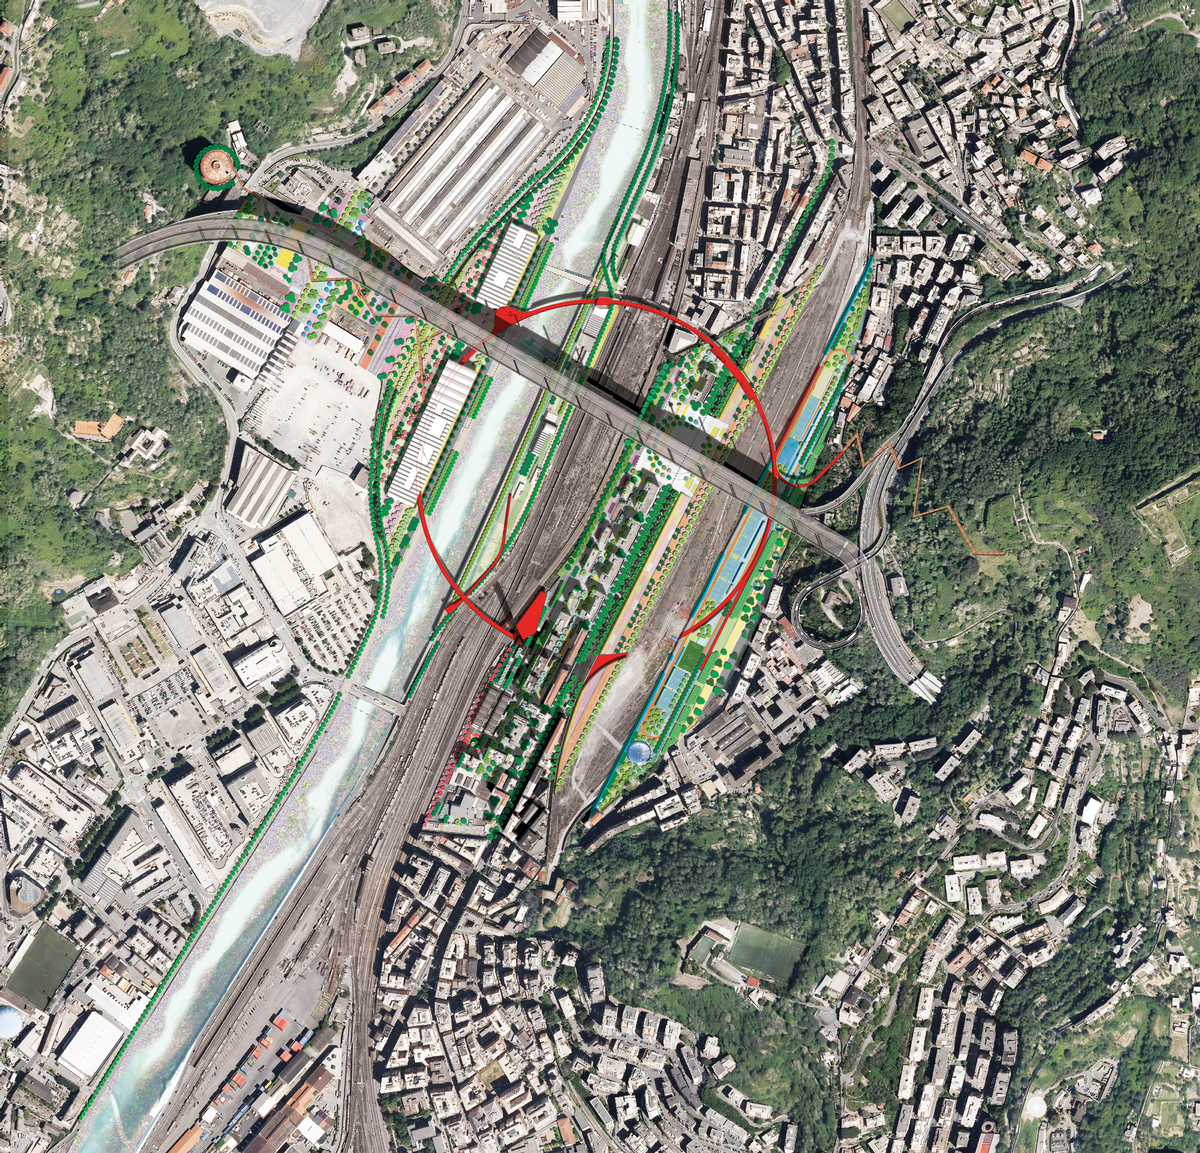 The Red Circle will span a large area, with off ramps in different places